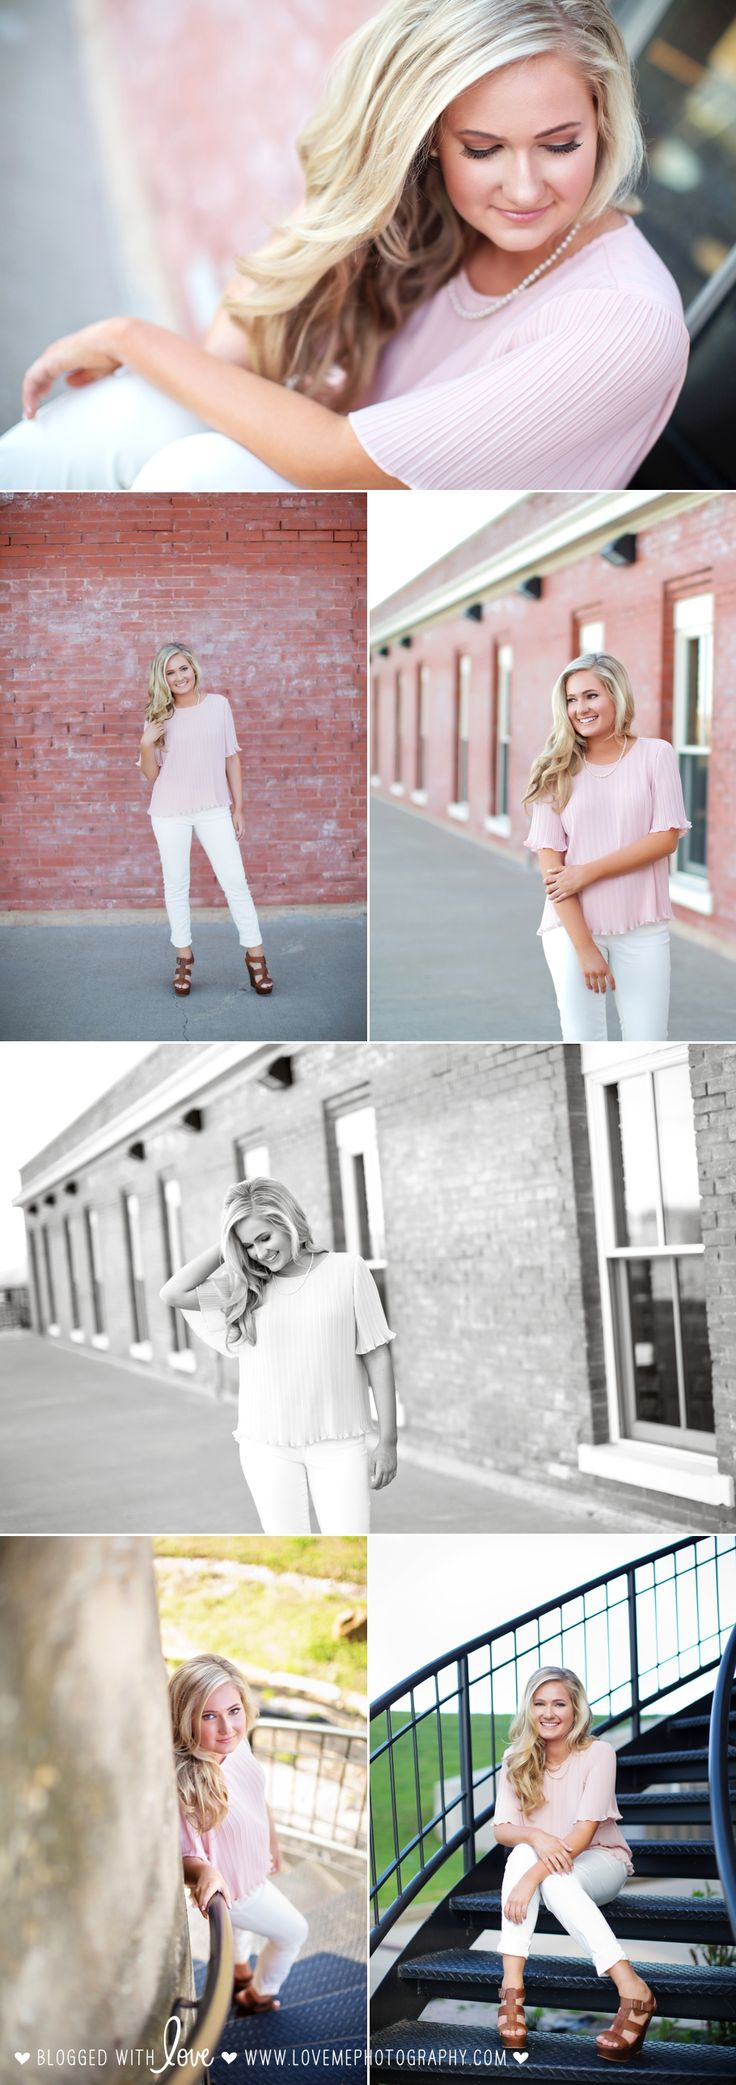 A pretty-in-pink session at White Rock Lake | Argyle High School | www.lovemephotography.com | Dallas Senior Portrait Photographer